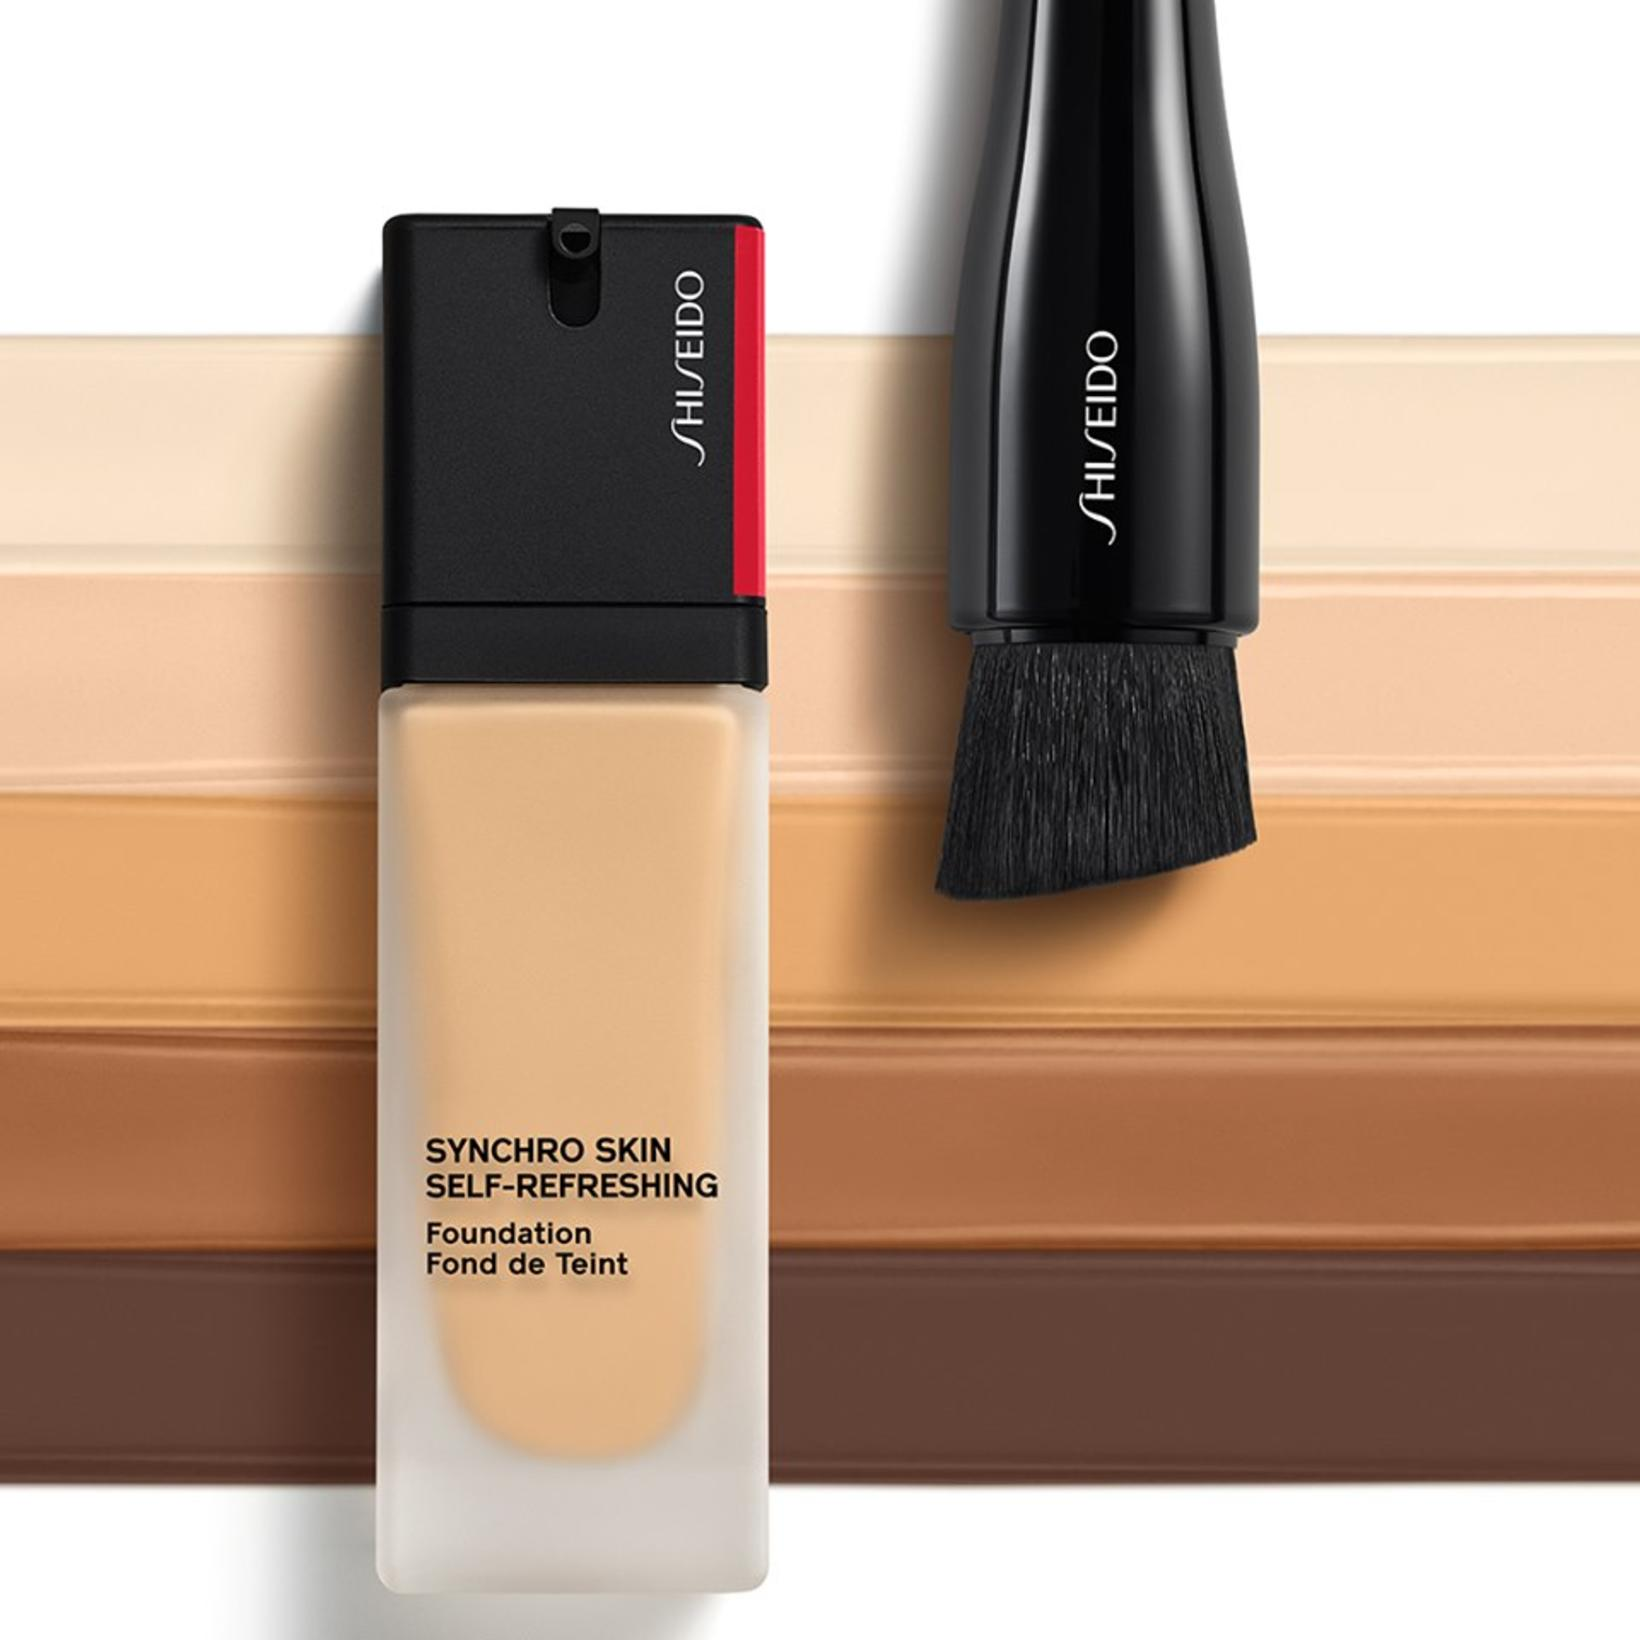 Shiseido Synchro Skin Self-Refreshing Foundation SPF 30.